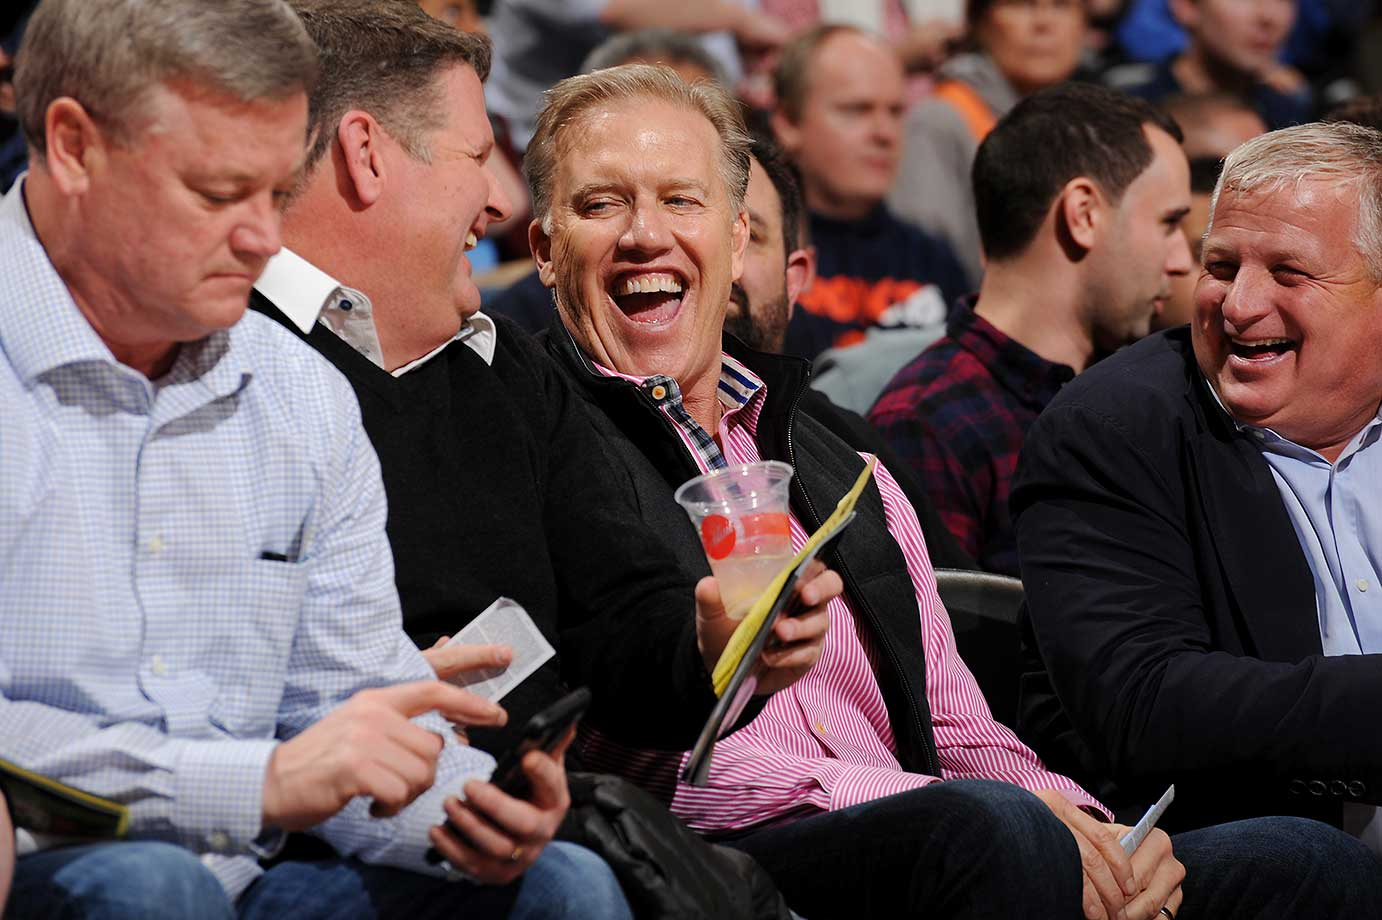 Former NFL quaterback John Elway attends the game between the Detroit Pistons and Denver Nuggets at the Pepsi Center in Denver.